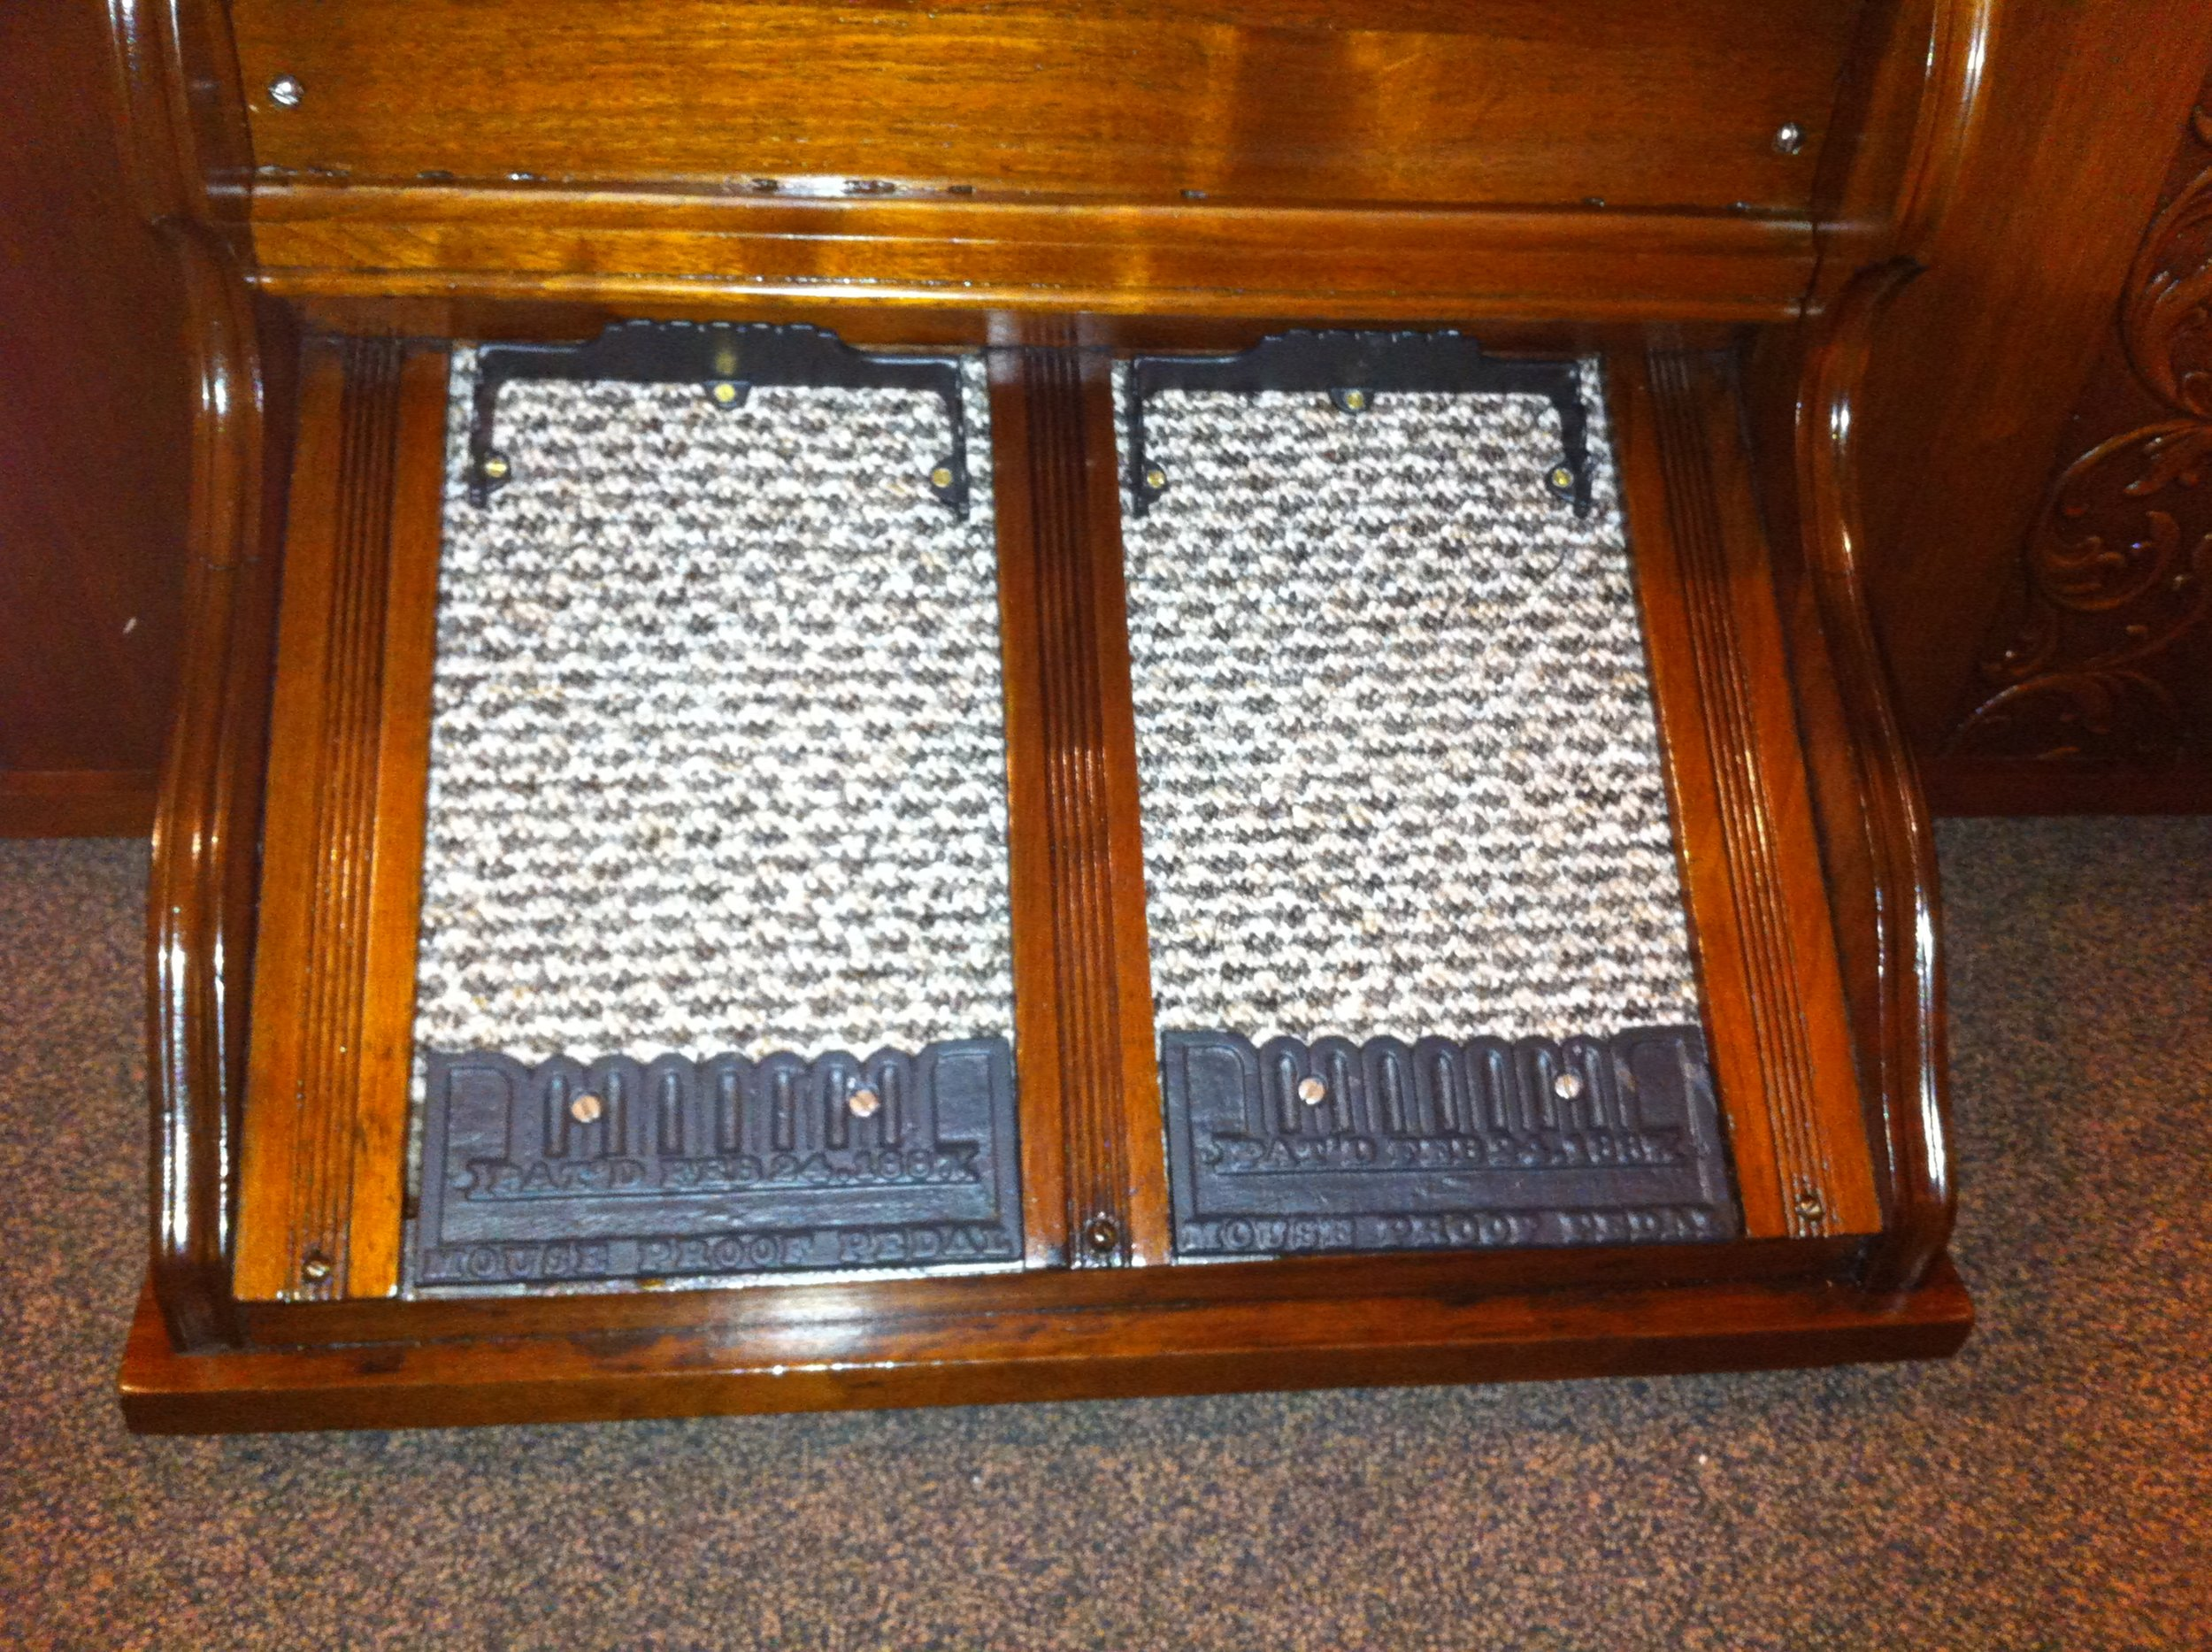 The pedals installed in the organ